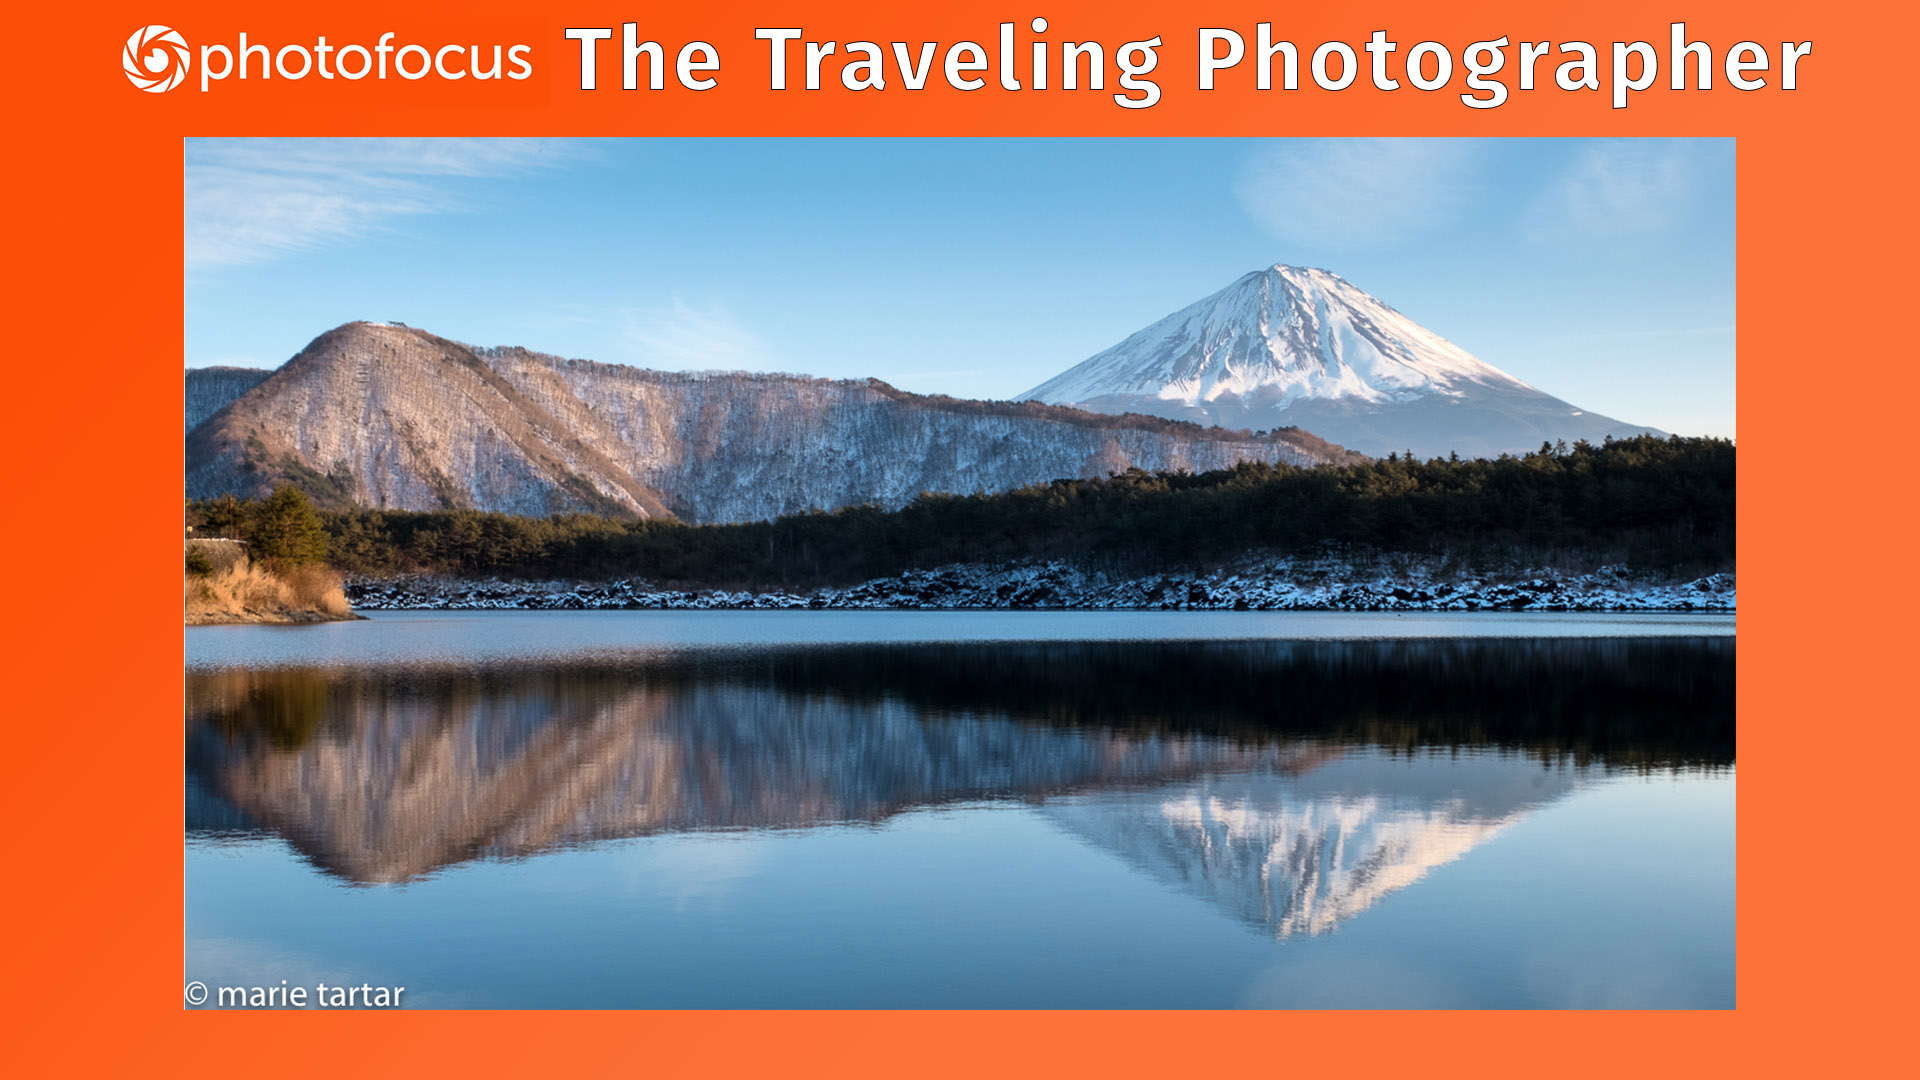 Photofocus Traveling Photographer Frame 2